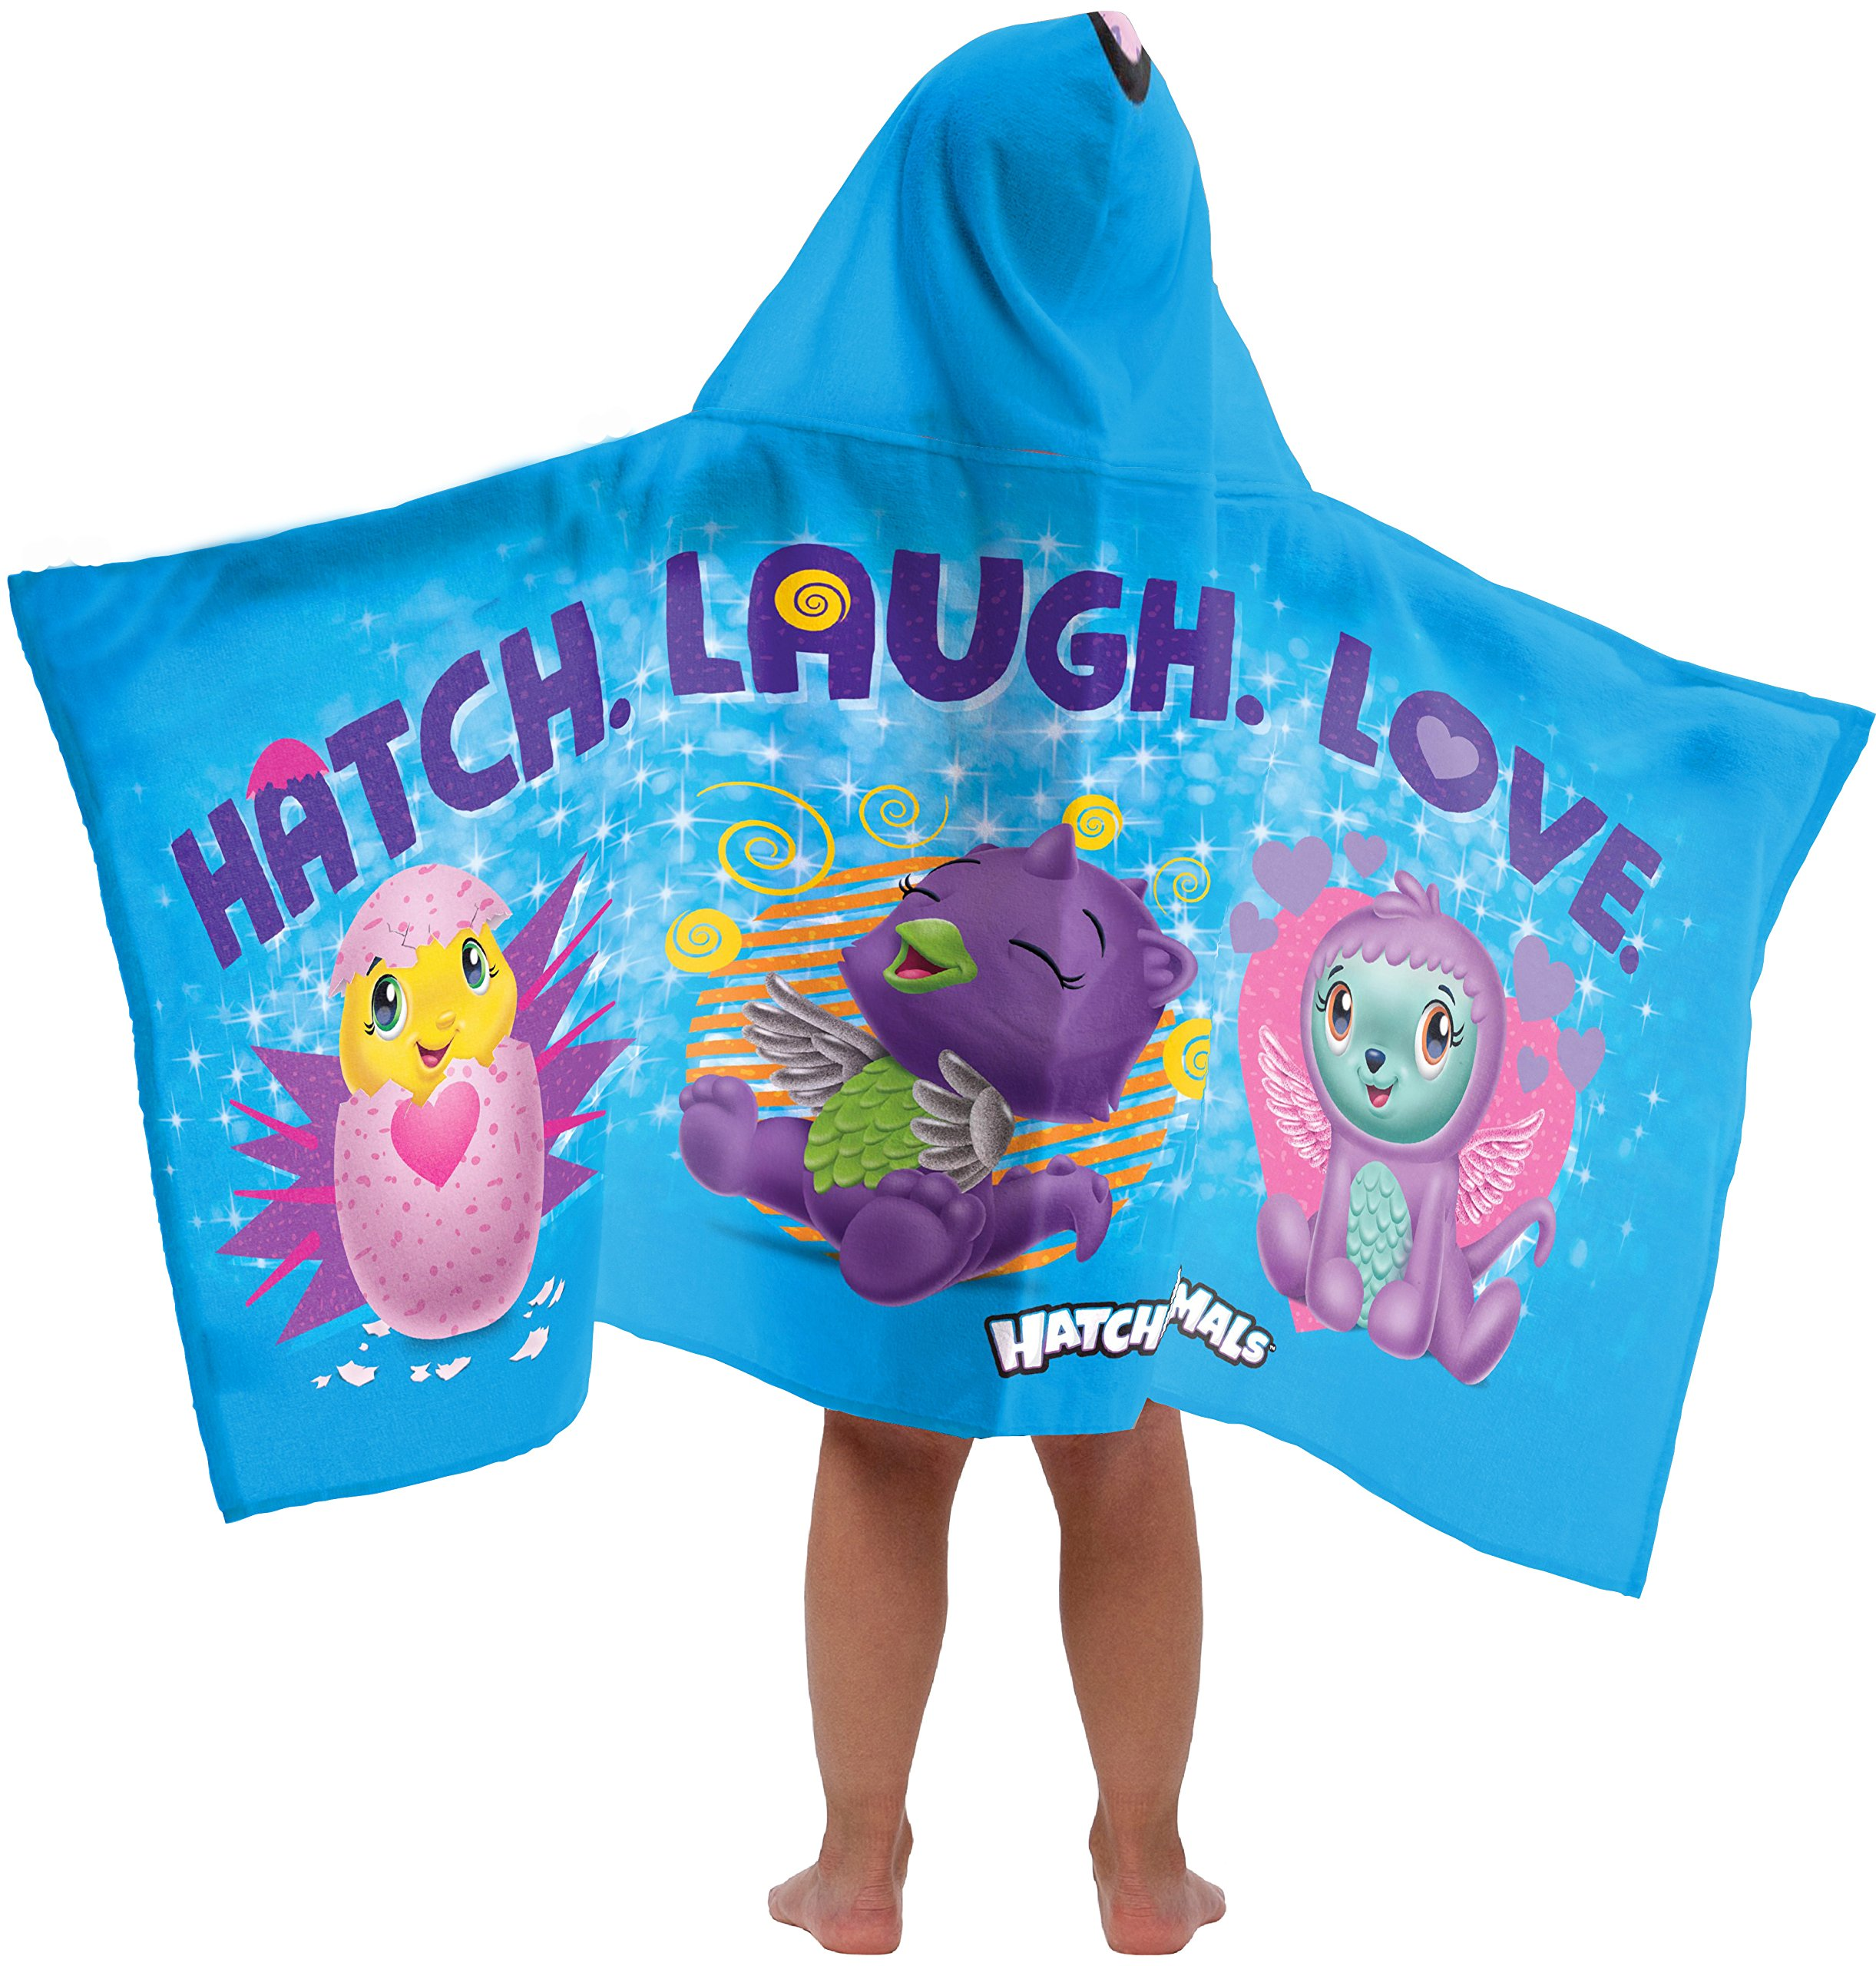 Jay Franco Hatchimals Hatch Laugh Love Super Soft & Absorbent Kids Hooded Bath/Pool/Beach Towel - Fade Resistant Cotton Terry Towel, 22.5'' Inch x 51'' Inch (Official Hatchimals Product) by Jay Franco